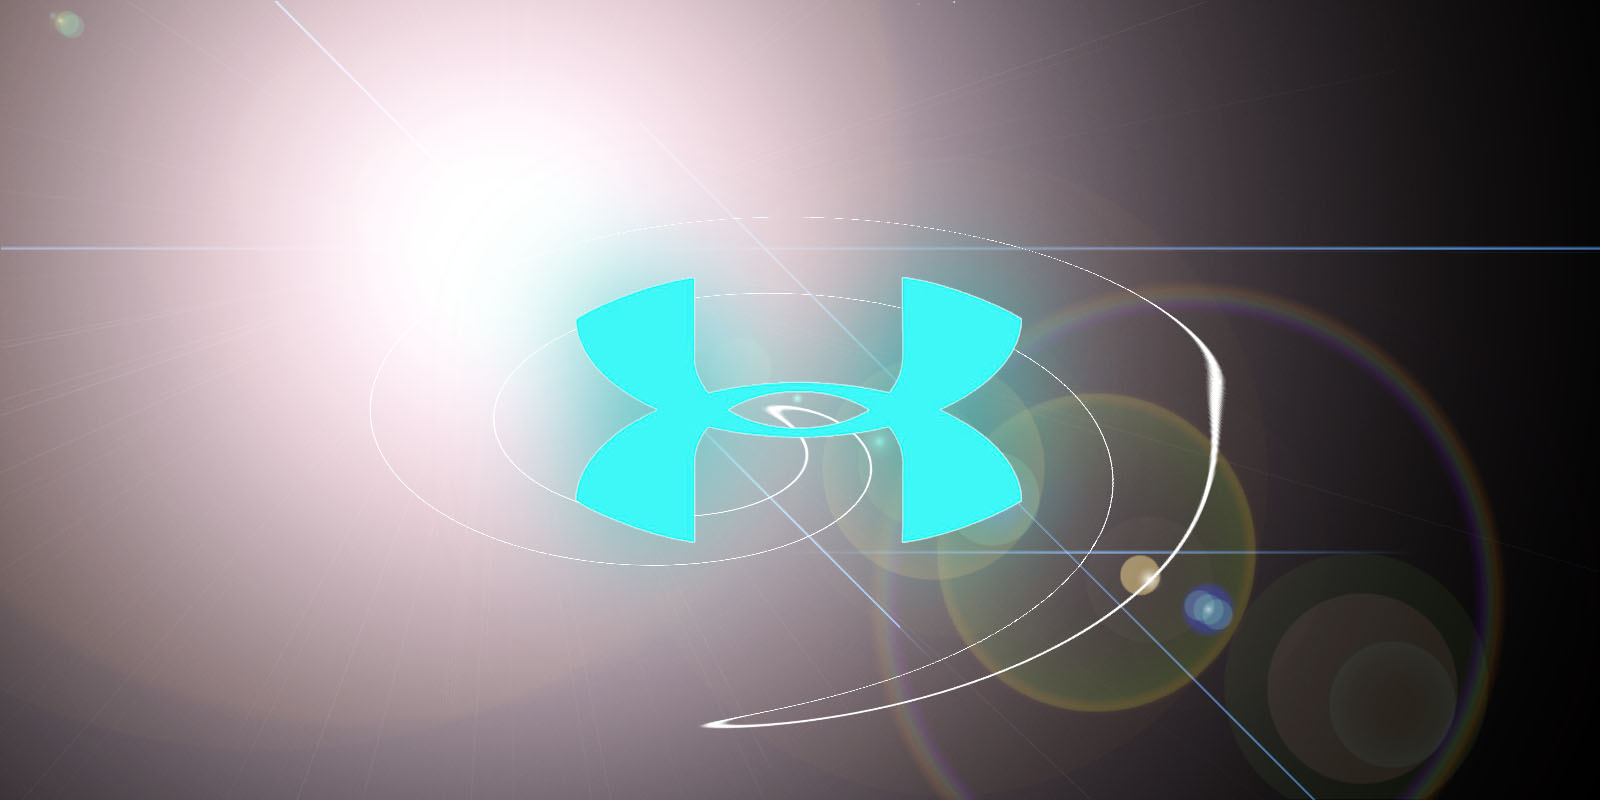 under armour logo wallpaper for iphone